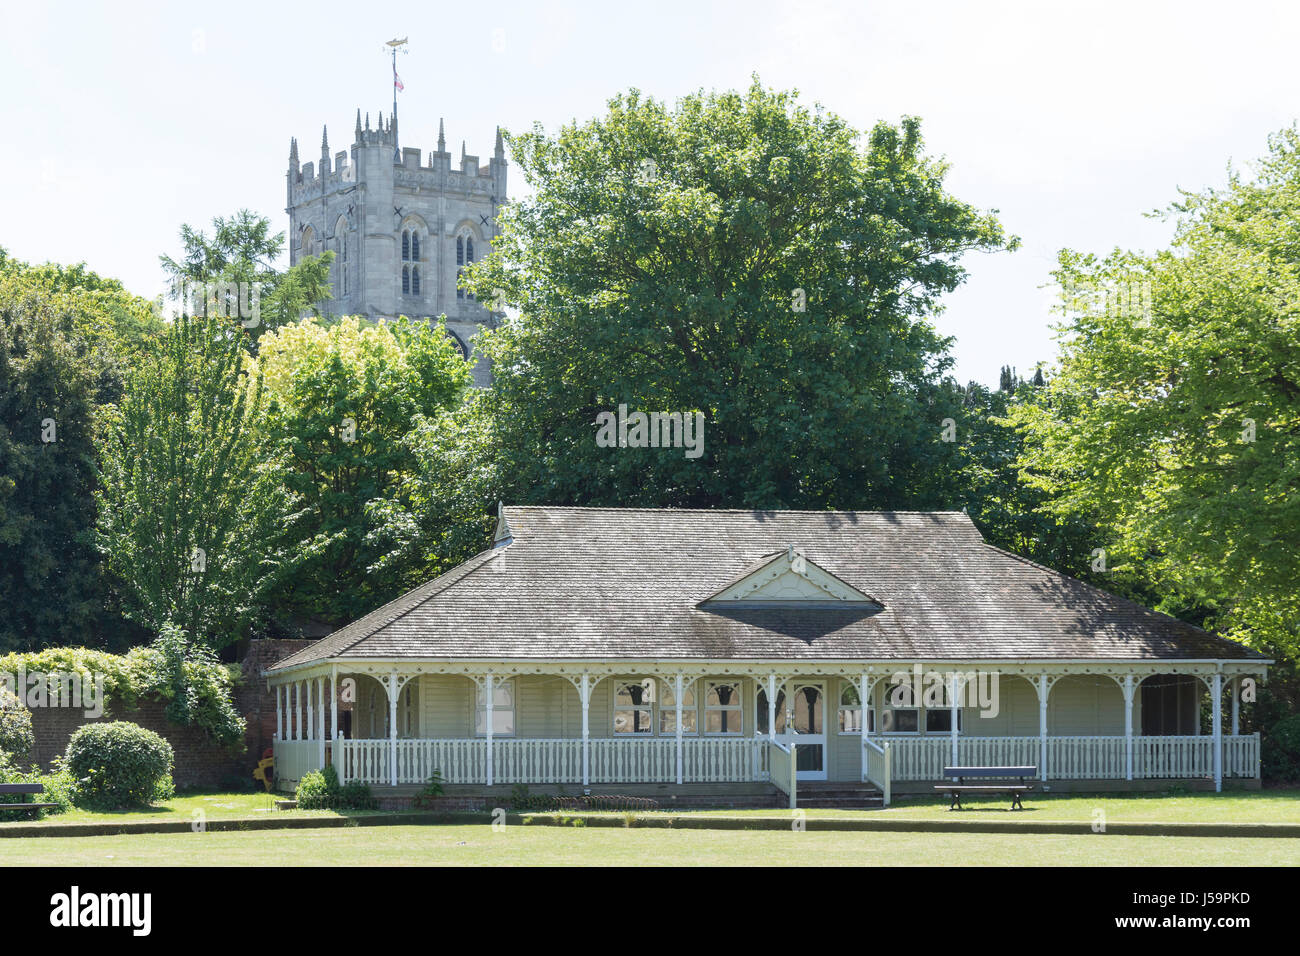 Kings Arms Bowling Pavilion and Christchurch Priory, Castle Street, Christchurch, Dorset, England, United Kingdom - Stock Image